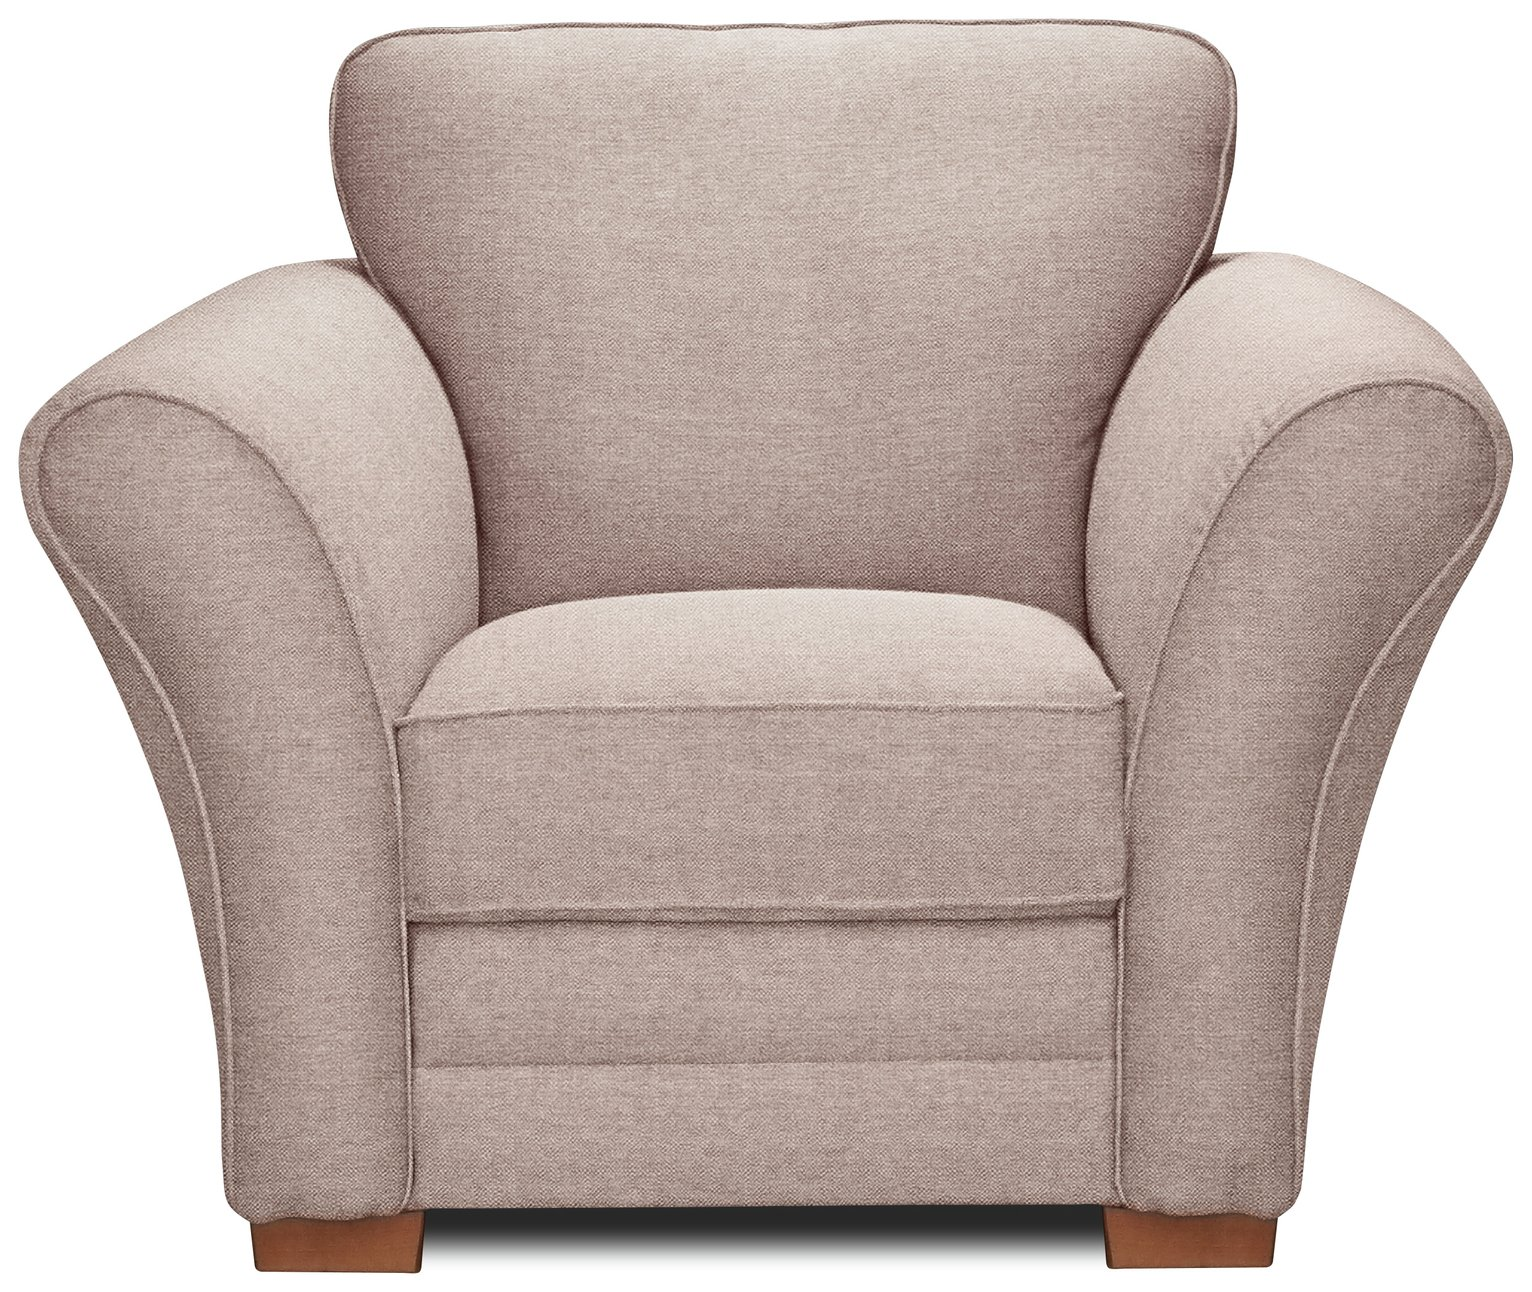 Argos Home New Thornton Fabric Armchair - Old Rose